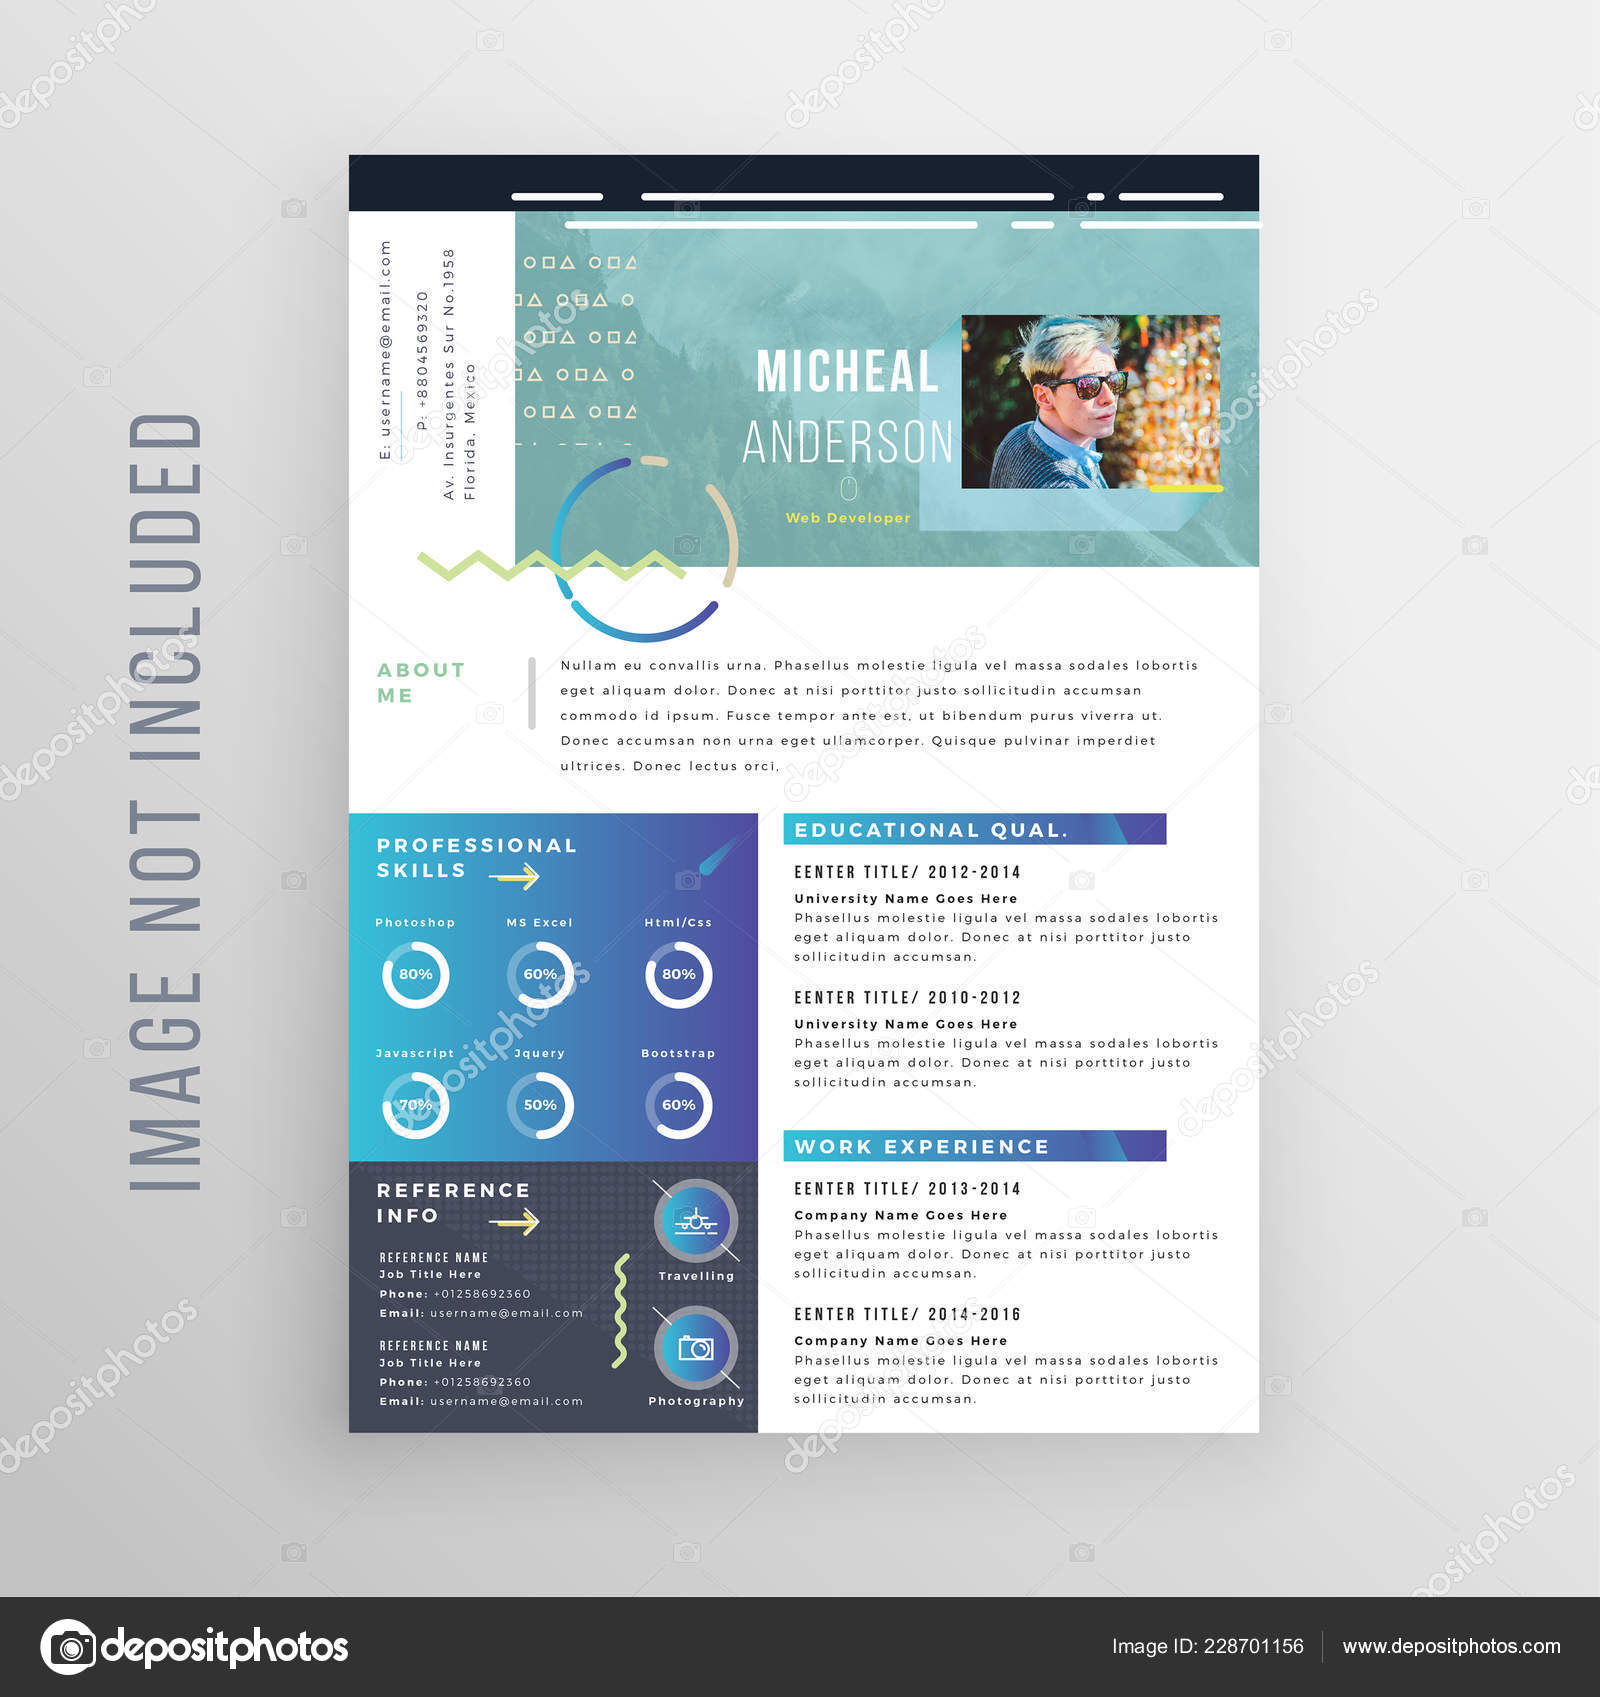 Resume Template Features 300 Dpi Print Ready 125 Inches Bleed